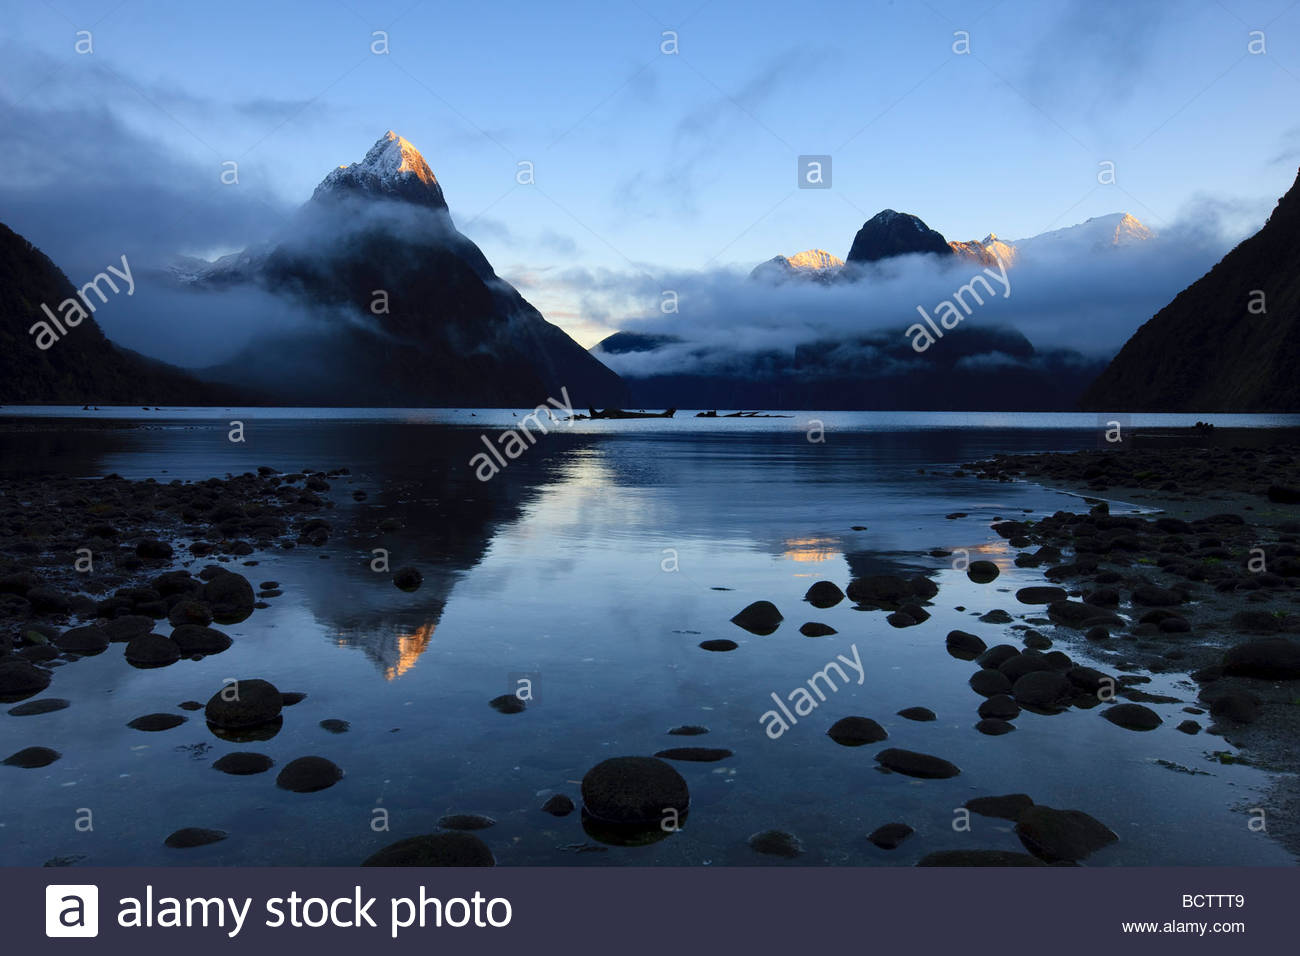 Mitre Peak, Mount Pembroke, and other mountains in Fiordland National Park, New Zealand, are reflected in Milford - Stock Image